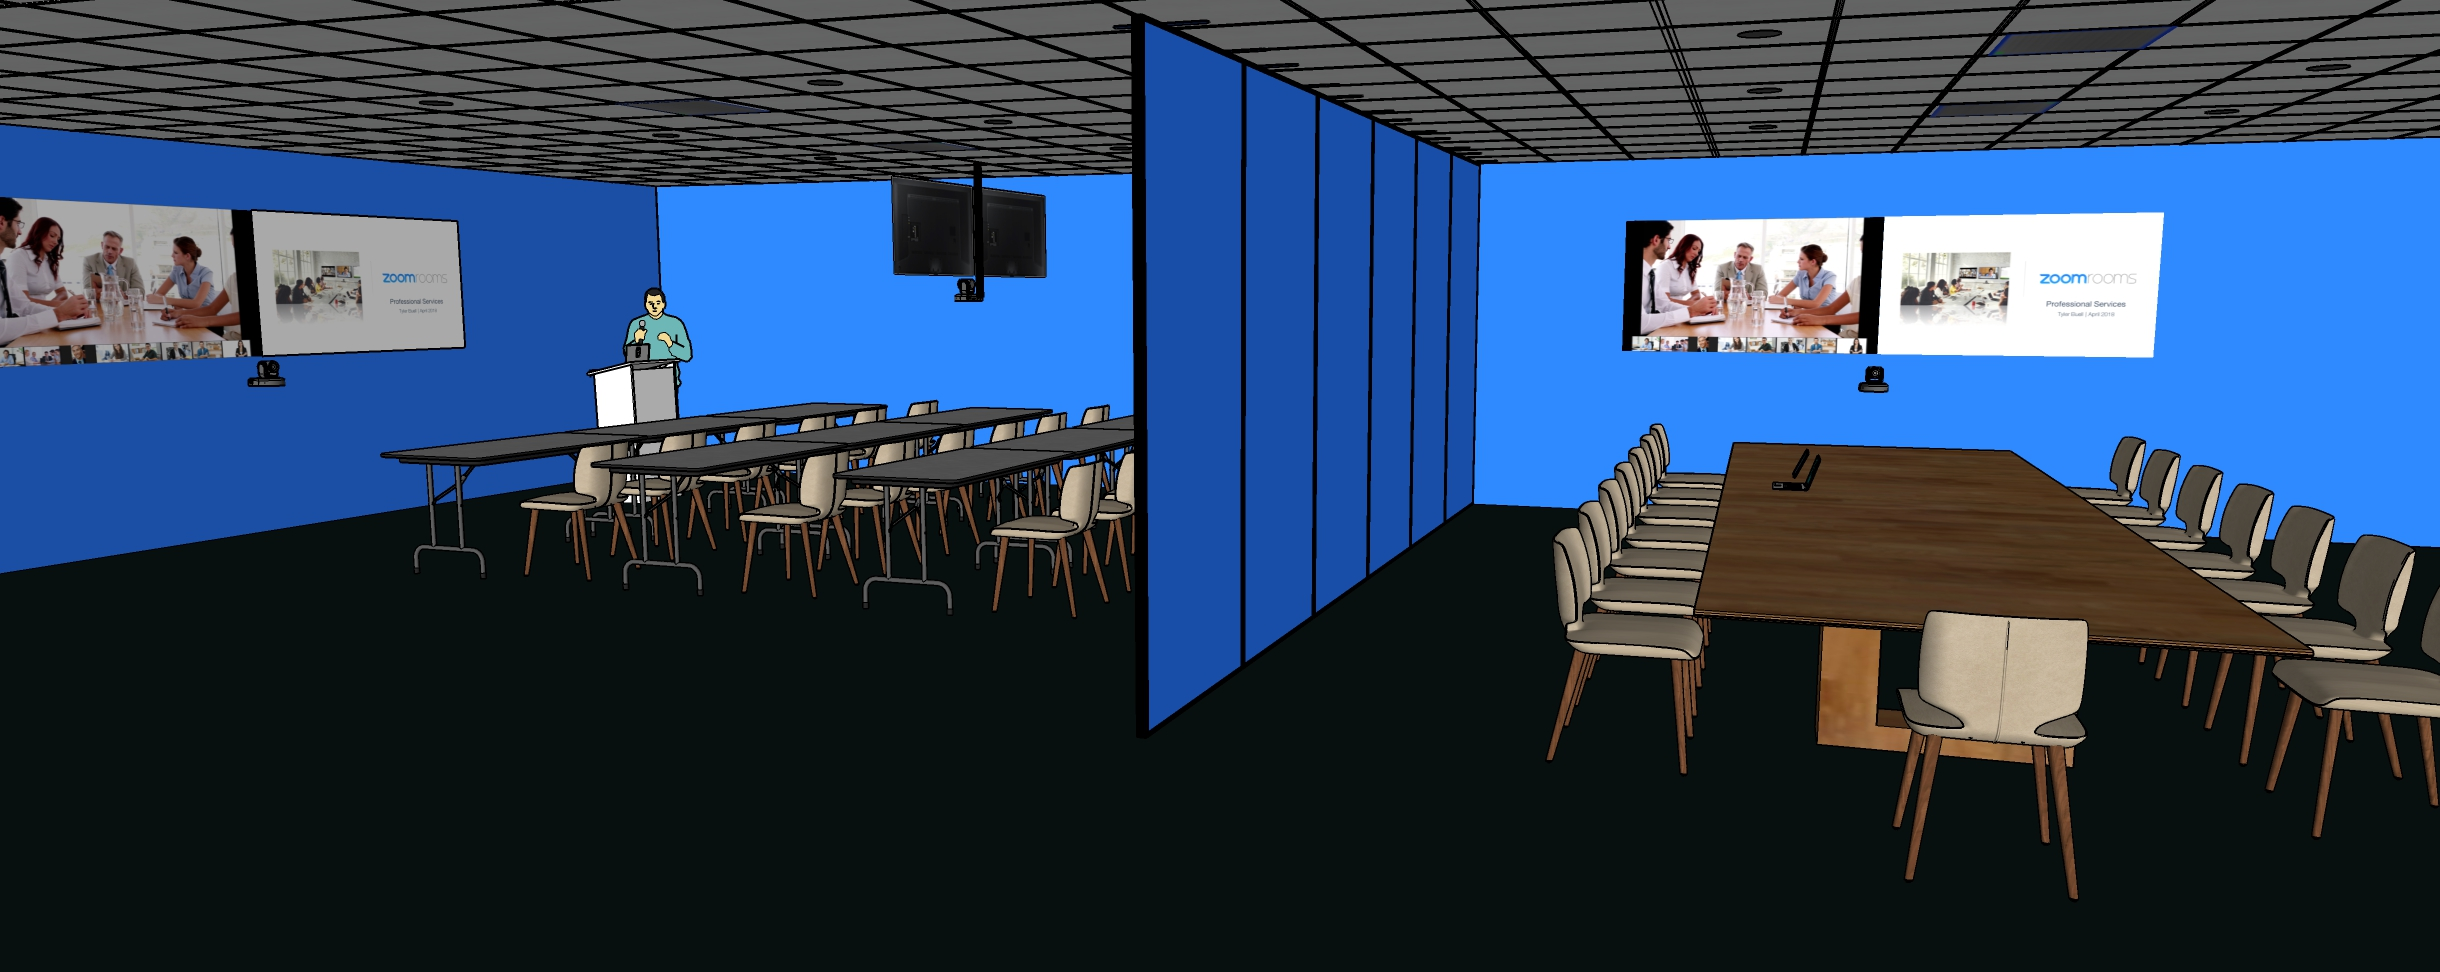 Zoom Rooms ProAV Divisible (MP Room).jpg